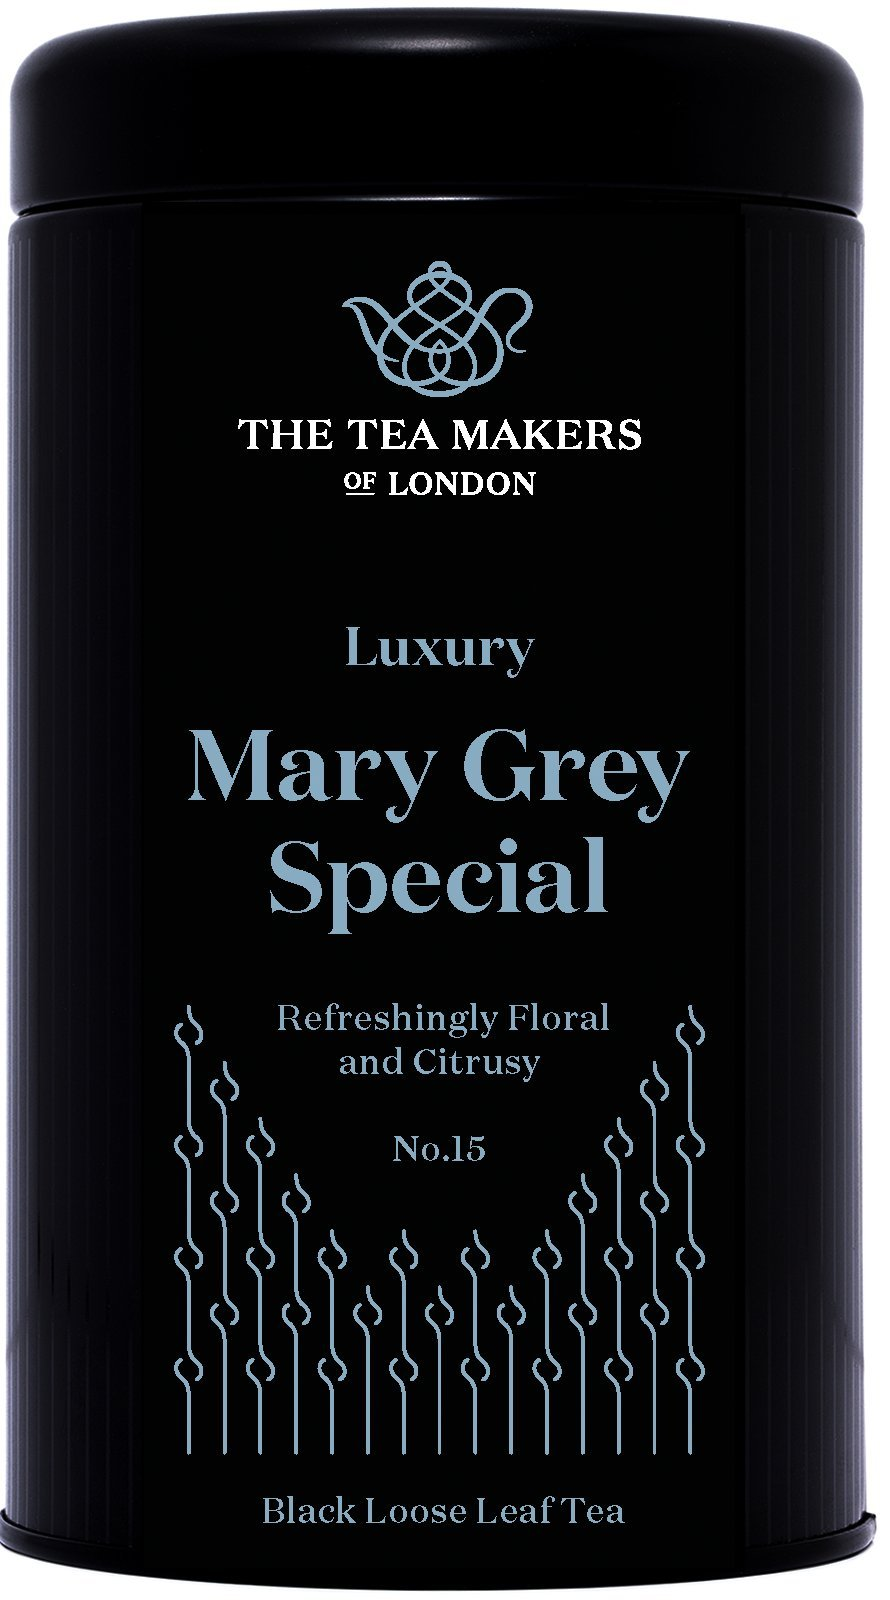 The-Tea-Makers-of-London-hochwertiger-Mary-Grey-Teebltter-scharzer-Tee-von-prmiertem-Teeshop-Geschenkidee-1er-Pack-1-x-125-g